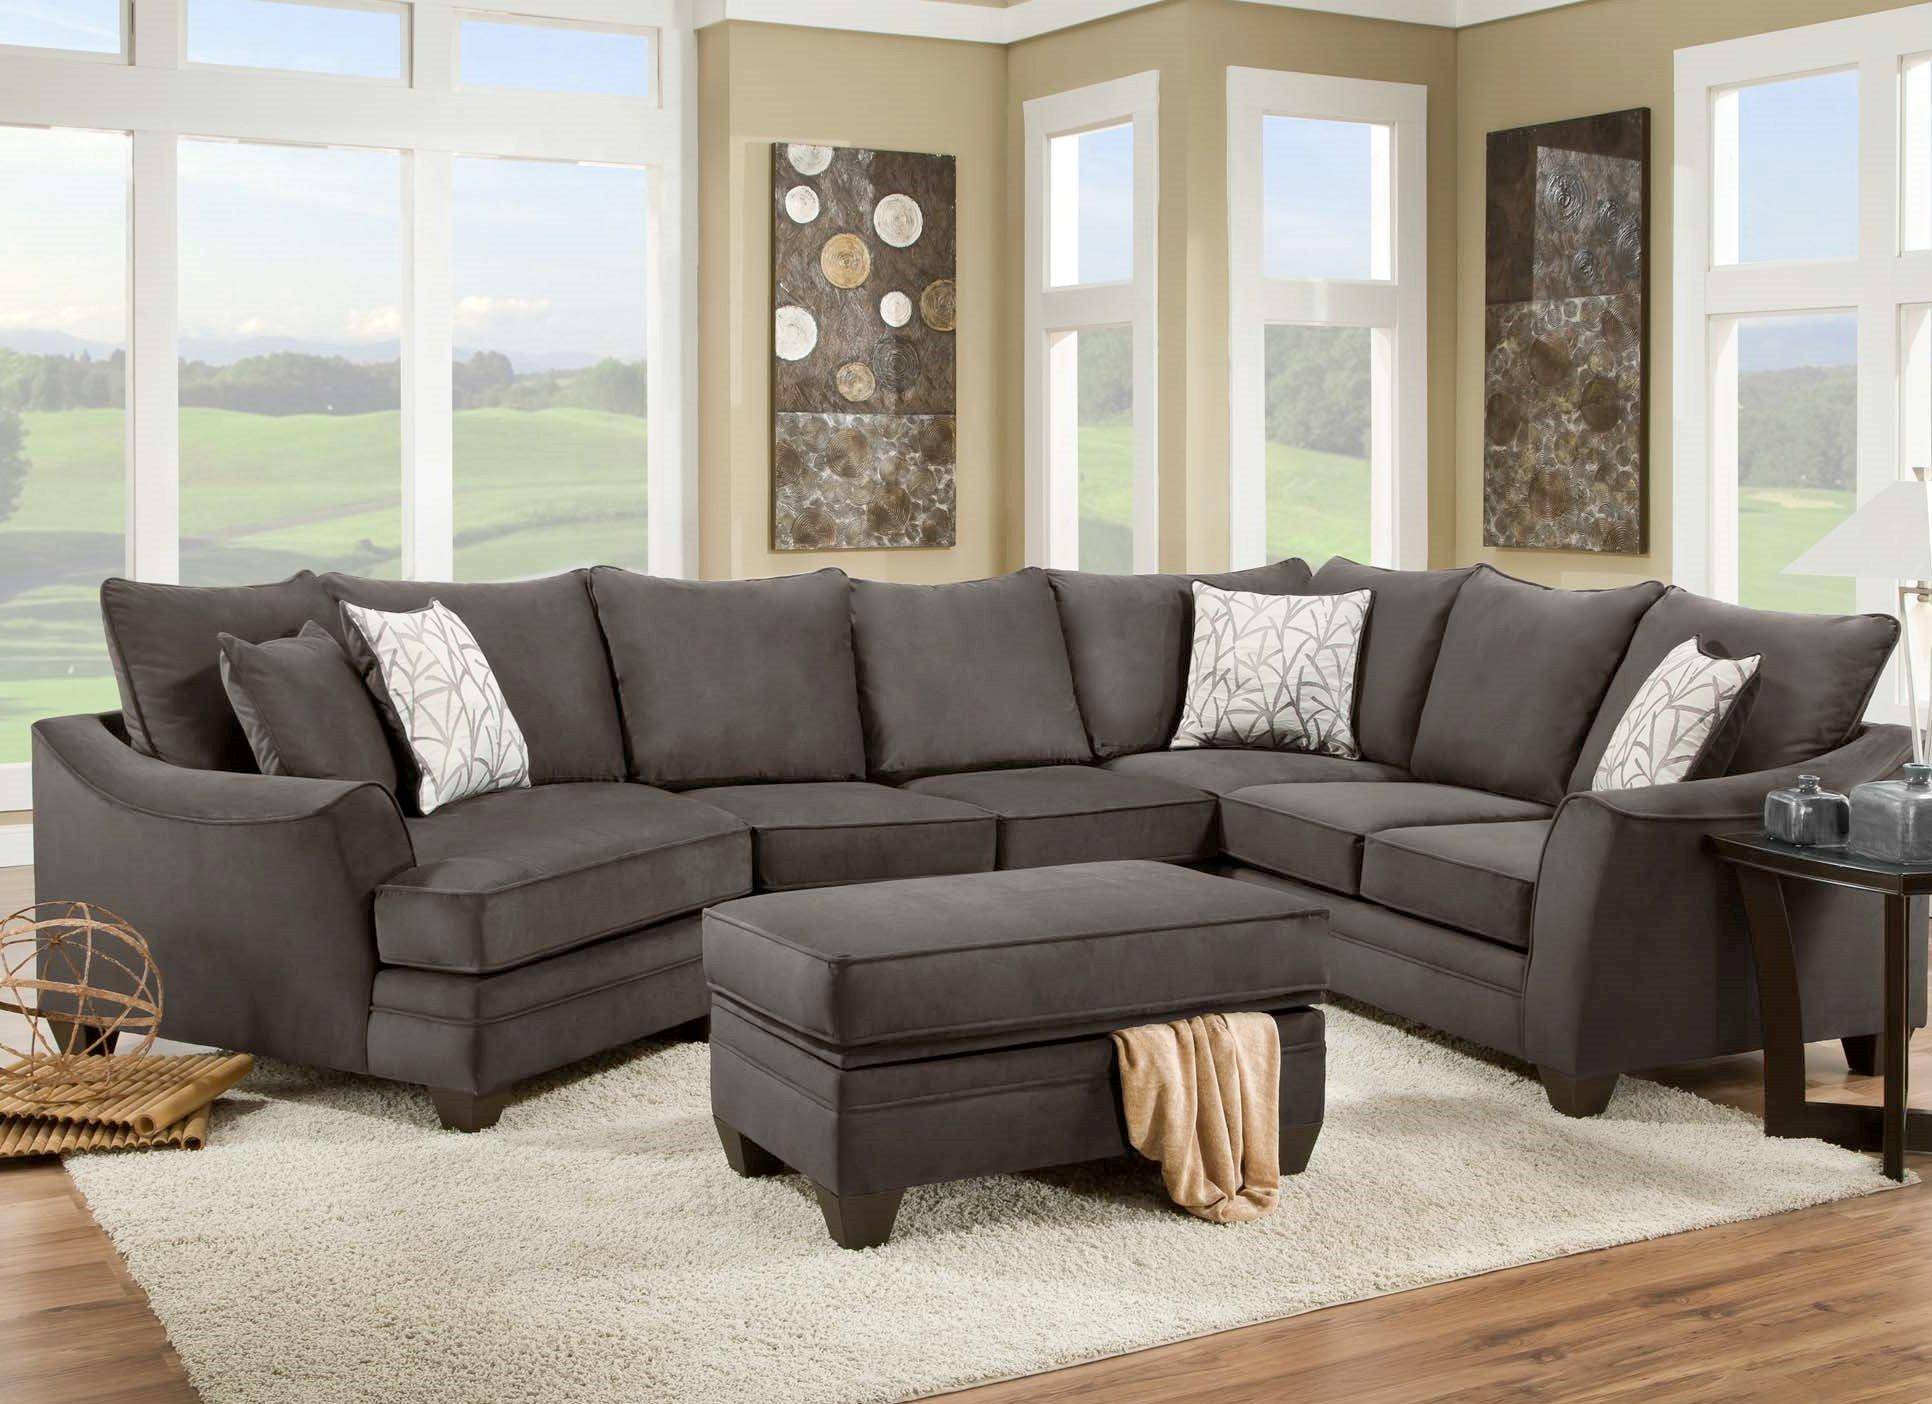 2017 Latest Cuddler Sectional Sofa